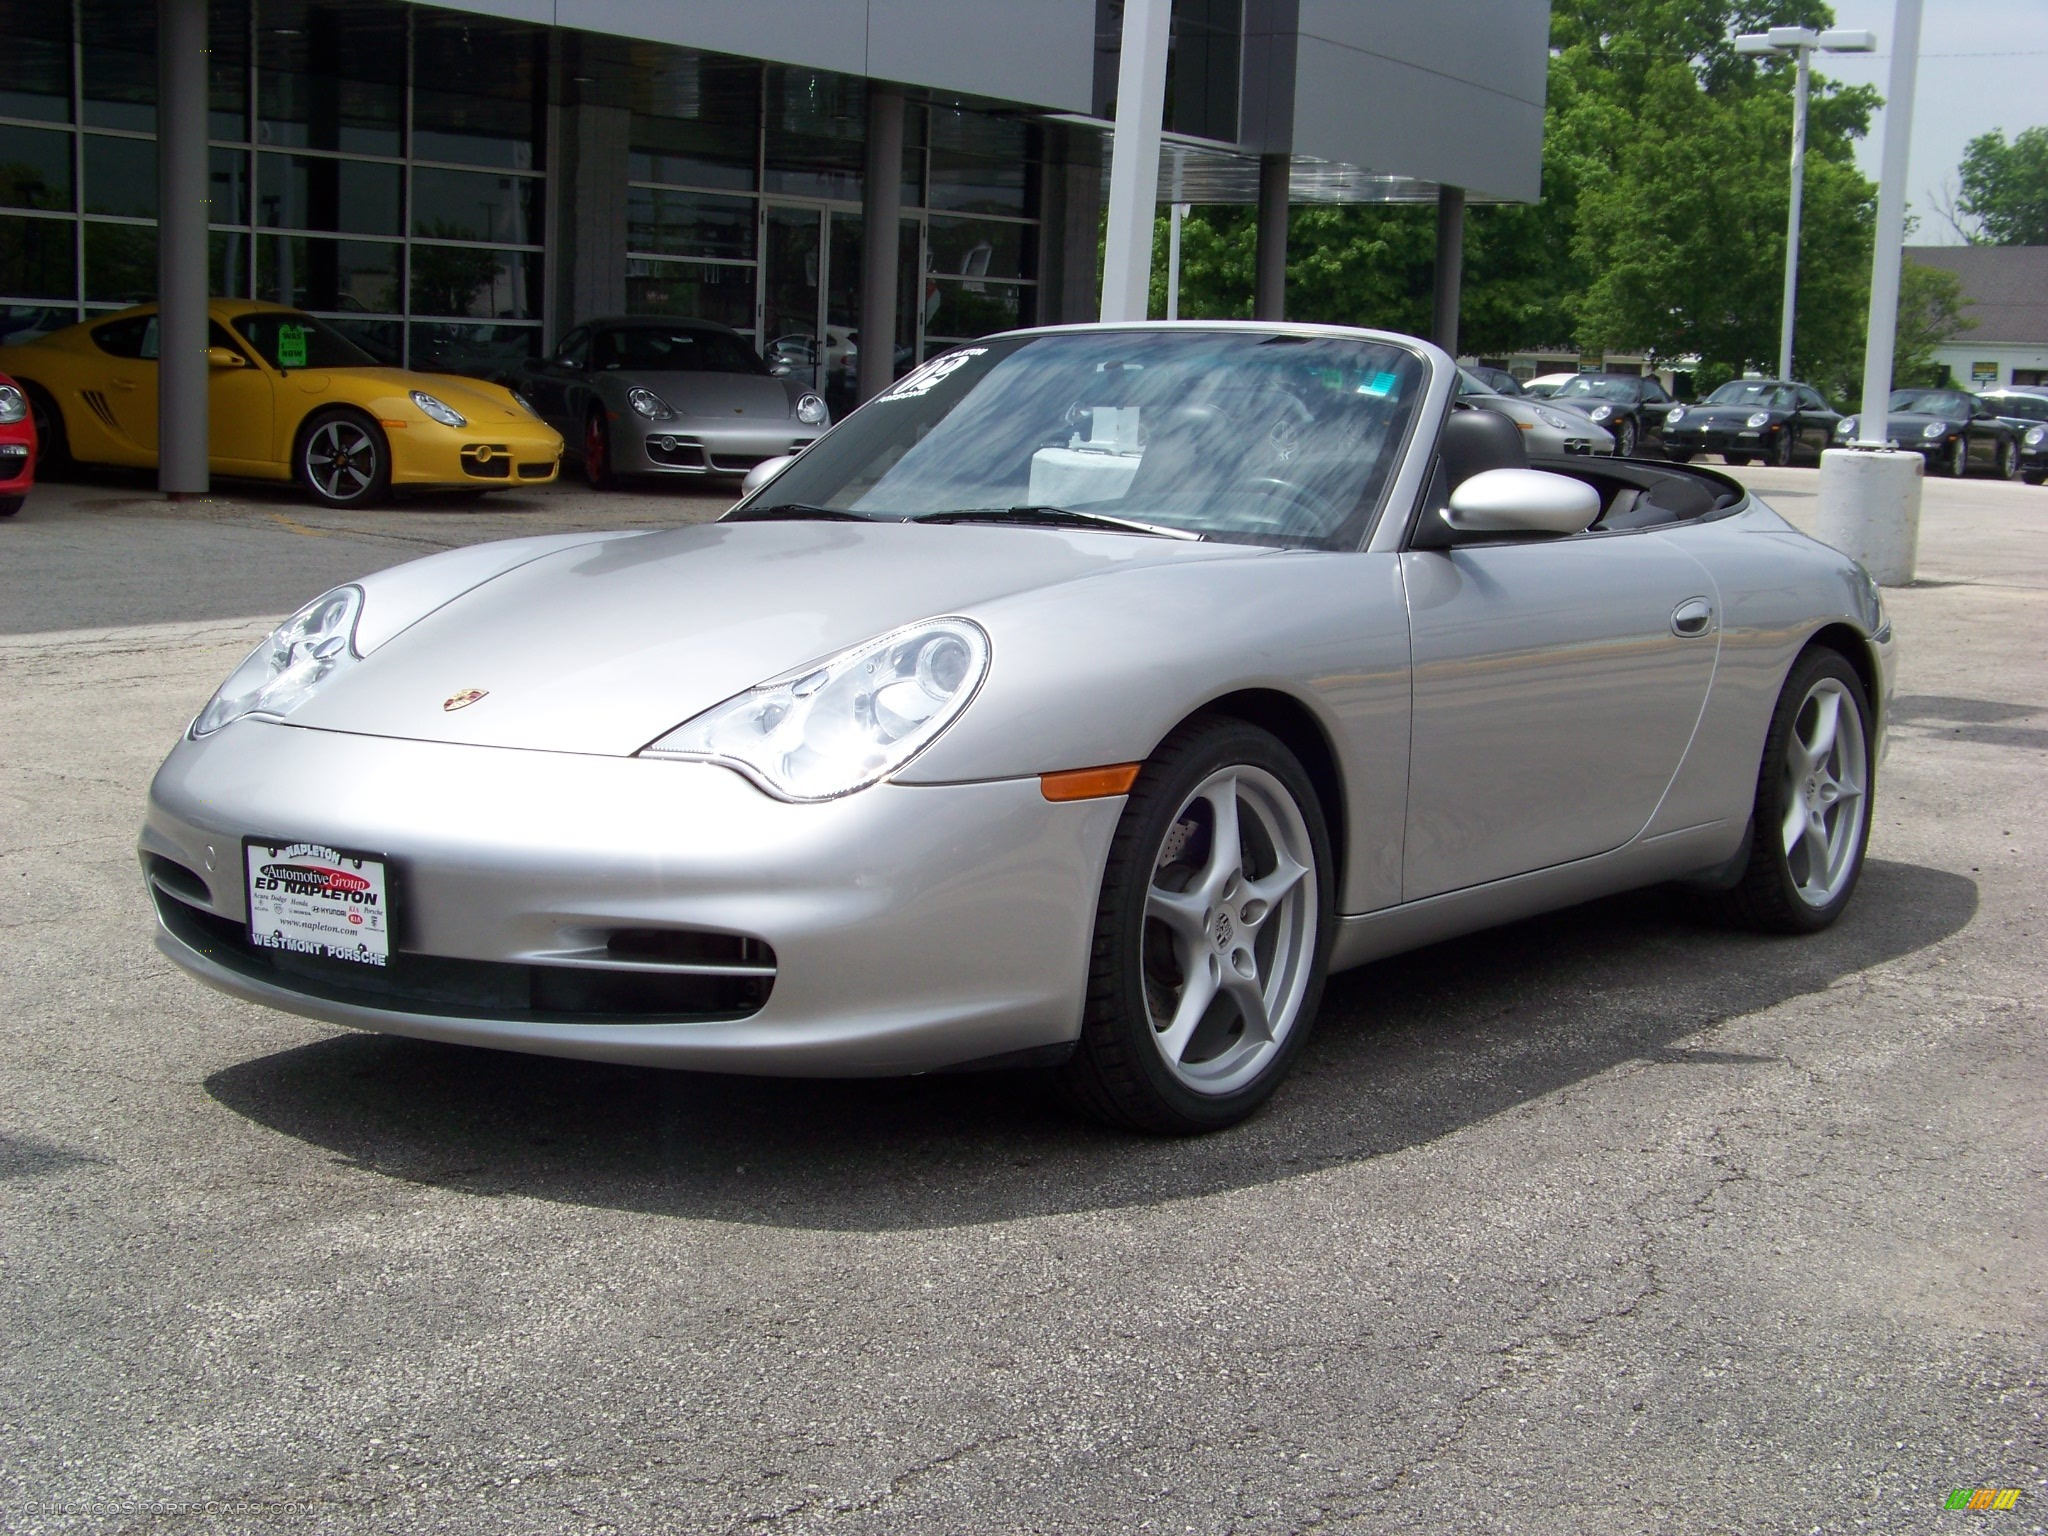 2002 porsche 911 carrera cabriolet in arctic silver metallic 654286. Black Bedroom Furniture Sets. Home Design Ideas